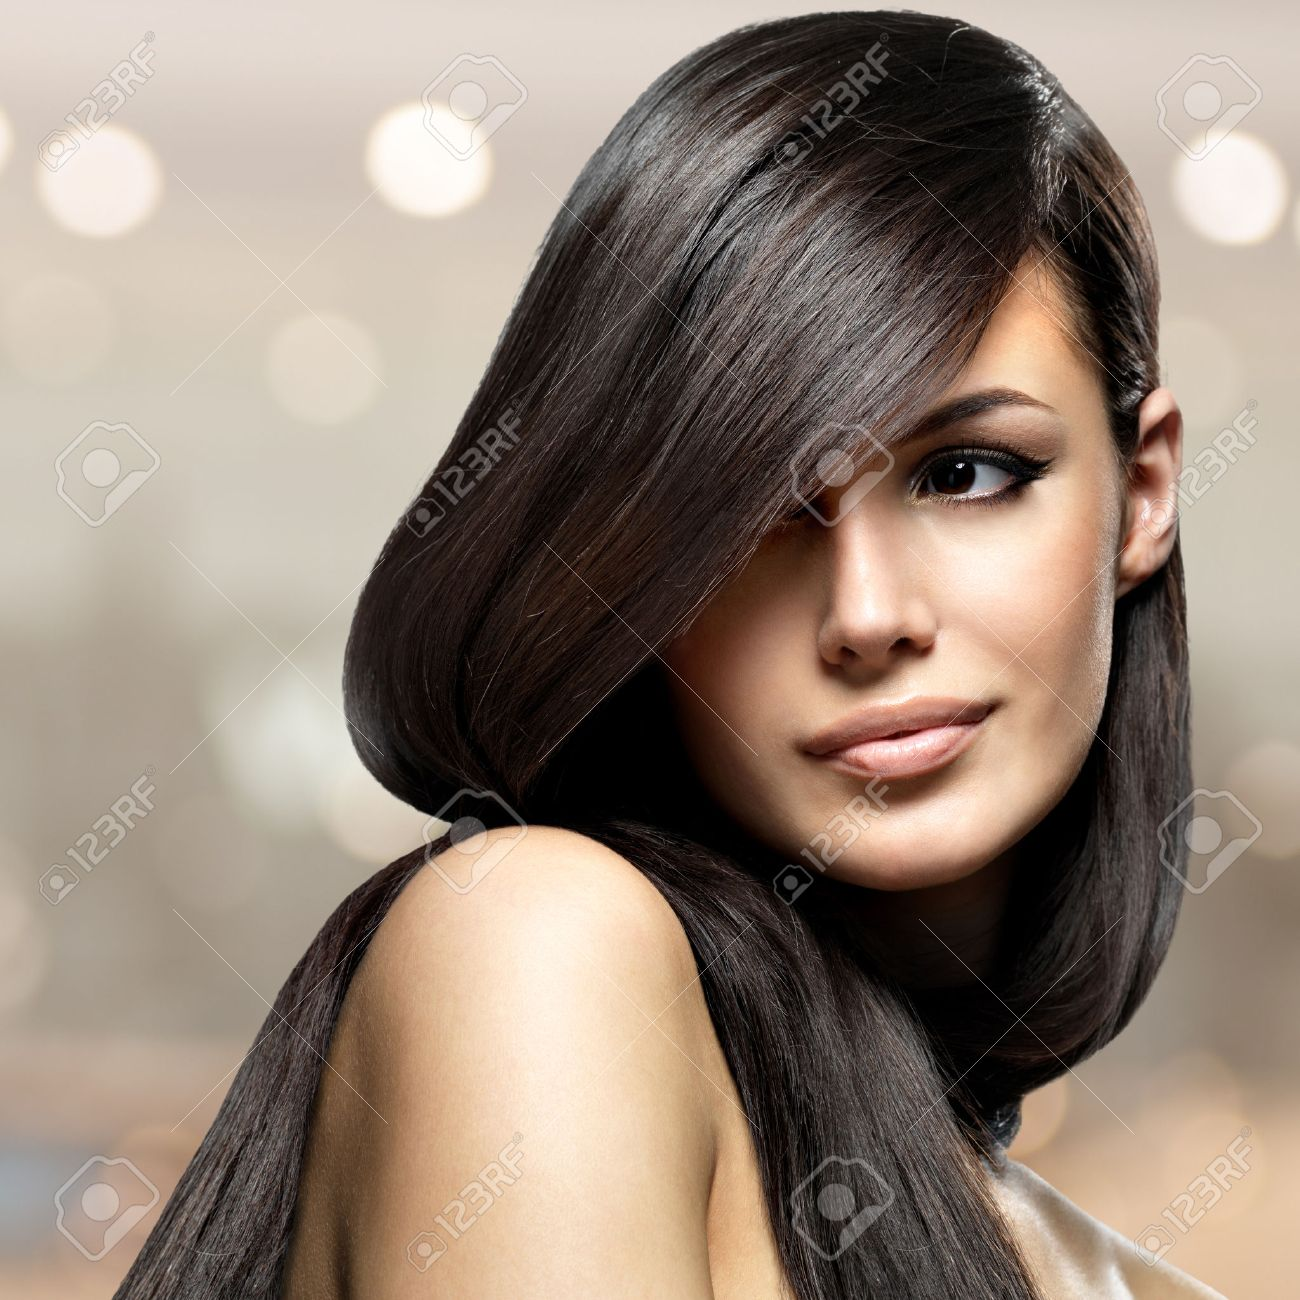 Straight Hair Model Stock Photos & Pictures. Royalty Free Straight ...